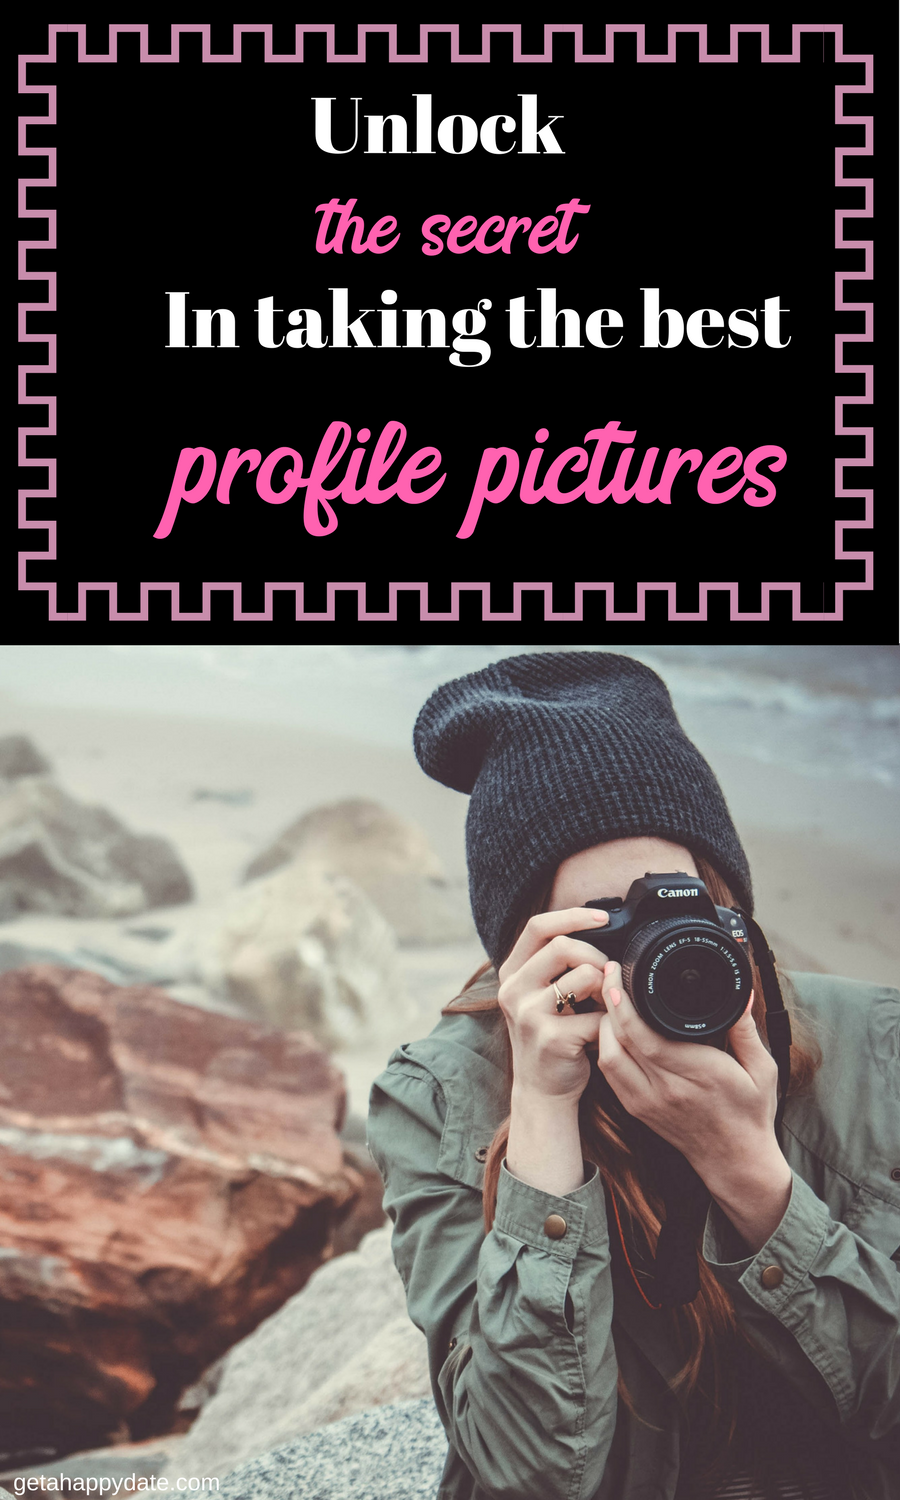 Online dating profile photo tips for canon